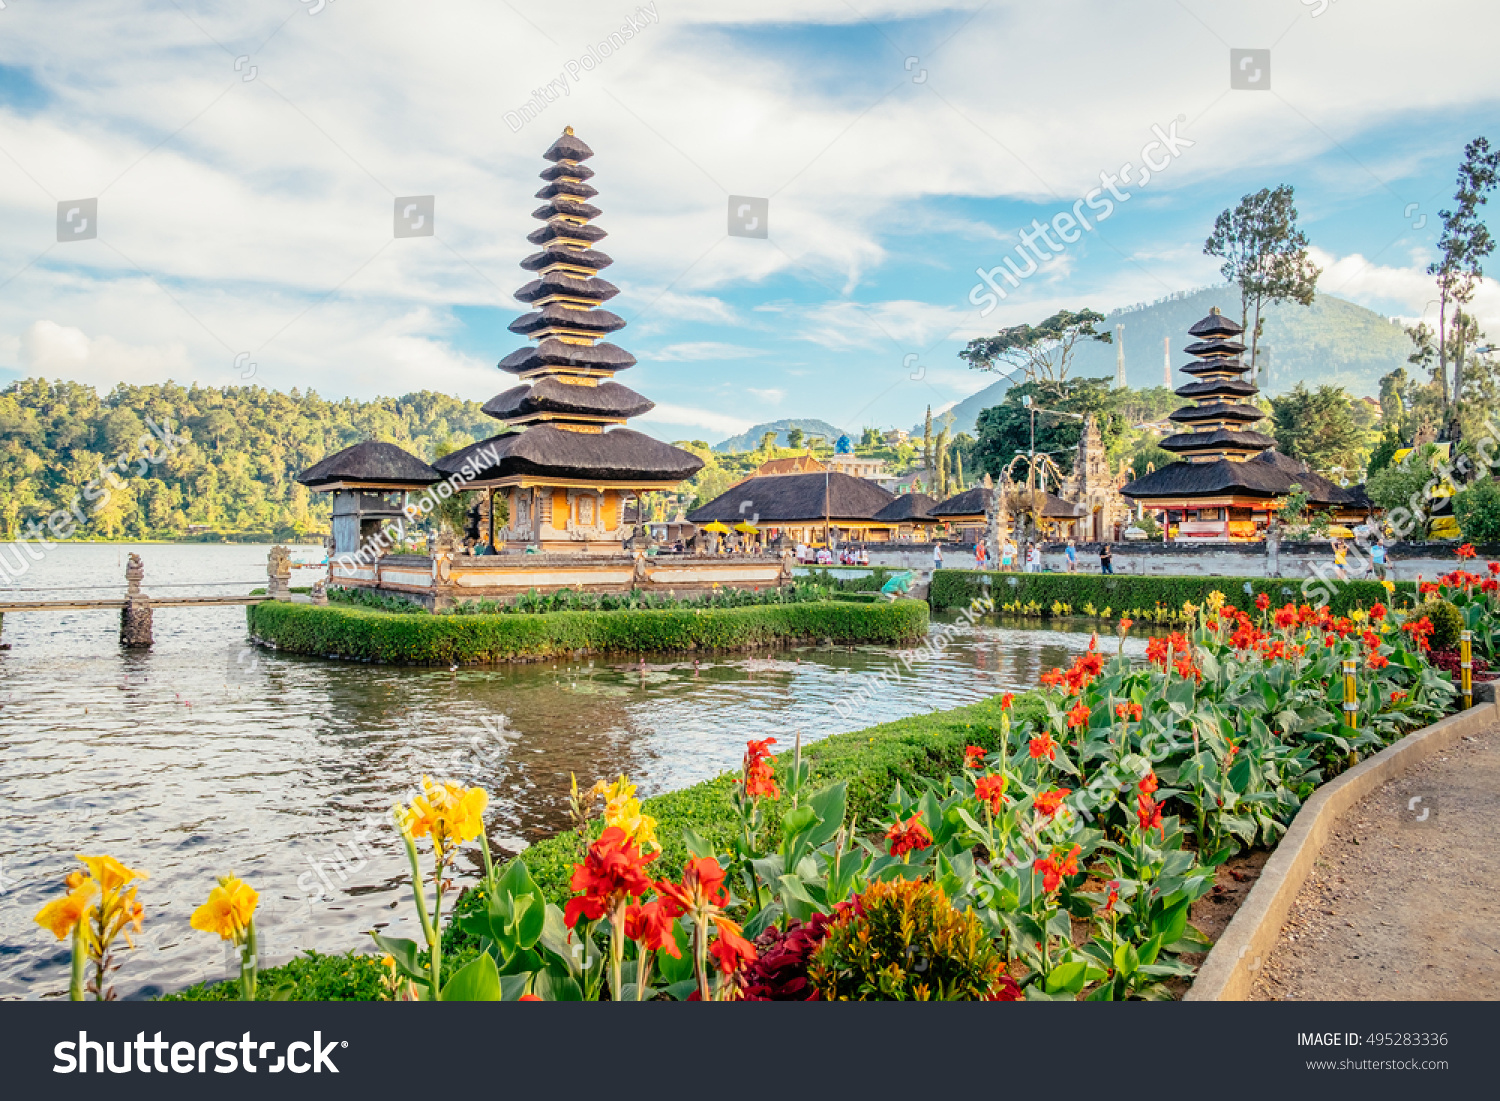 Pura Ulun Danu Bratan Bali Island Stock Photo Edit Now 495283336